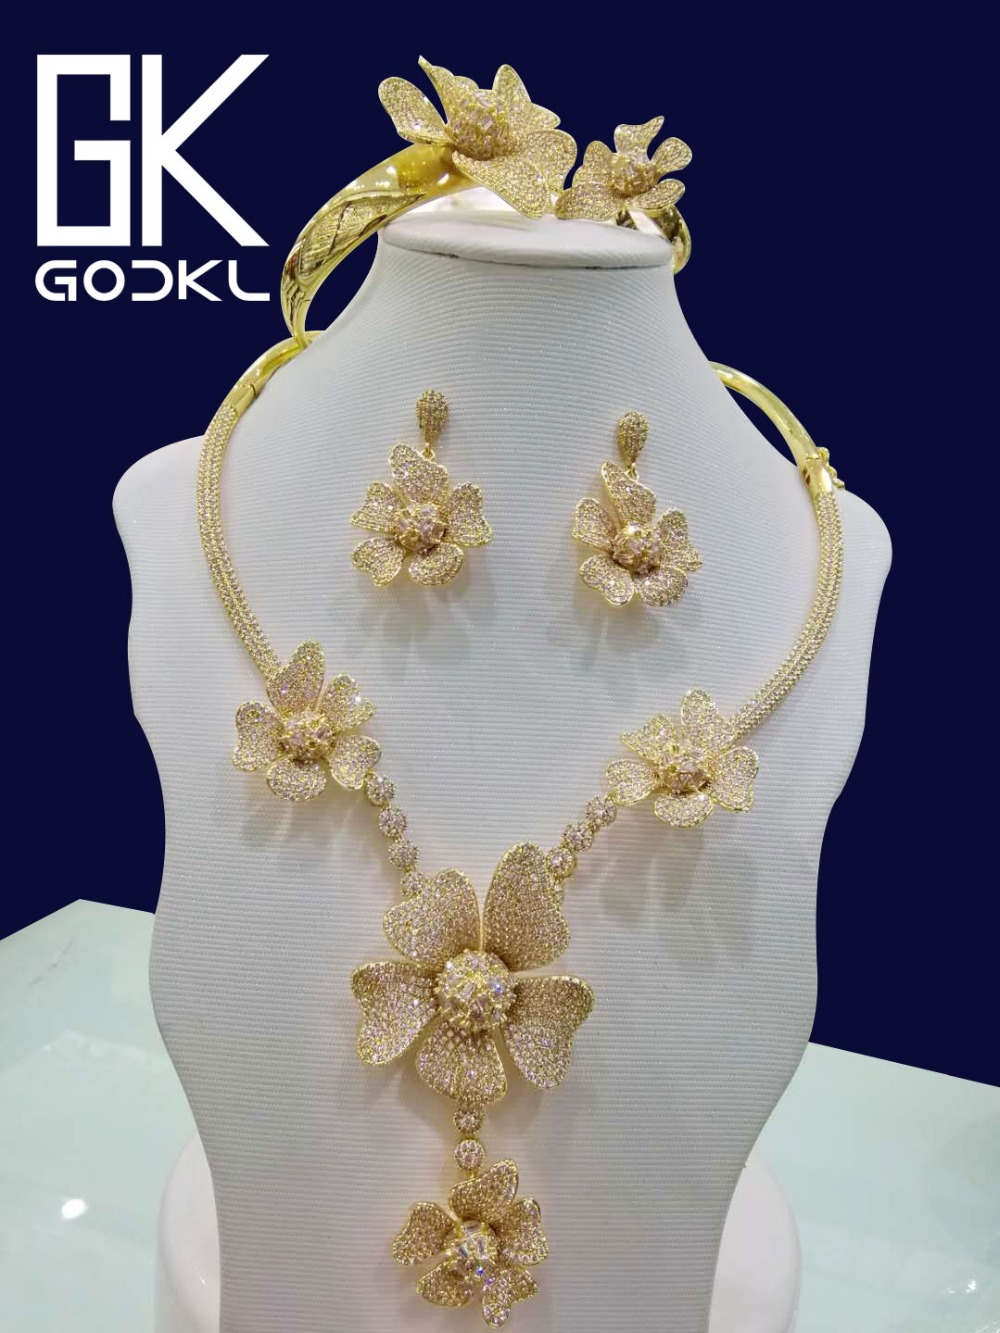 GODKI Luxury DUBAI GOLD Jewelry sets For Women Wedding Cubic Zirconia Flower African Jewelry Sets Nigerian bridal jewelry setsGODKI Luxury DUBAI GOLD Jewelry sets For Women Wedding Cubic Zirconia Flower African Jewelry Sets Nigerian bridal jewelry sets